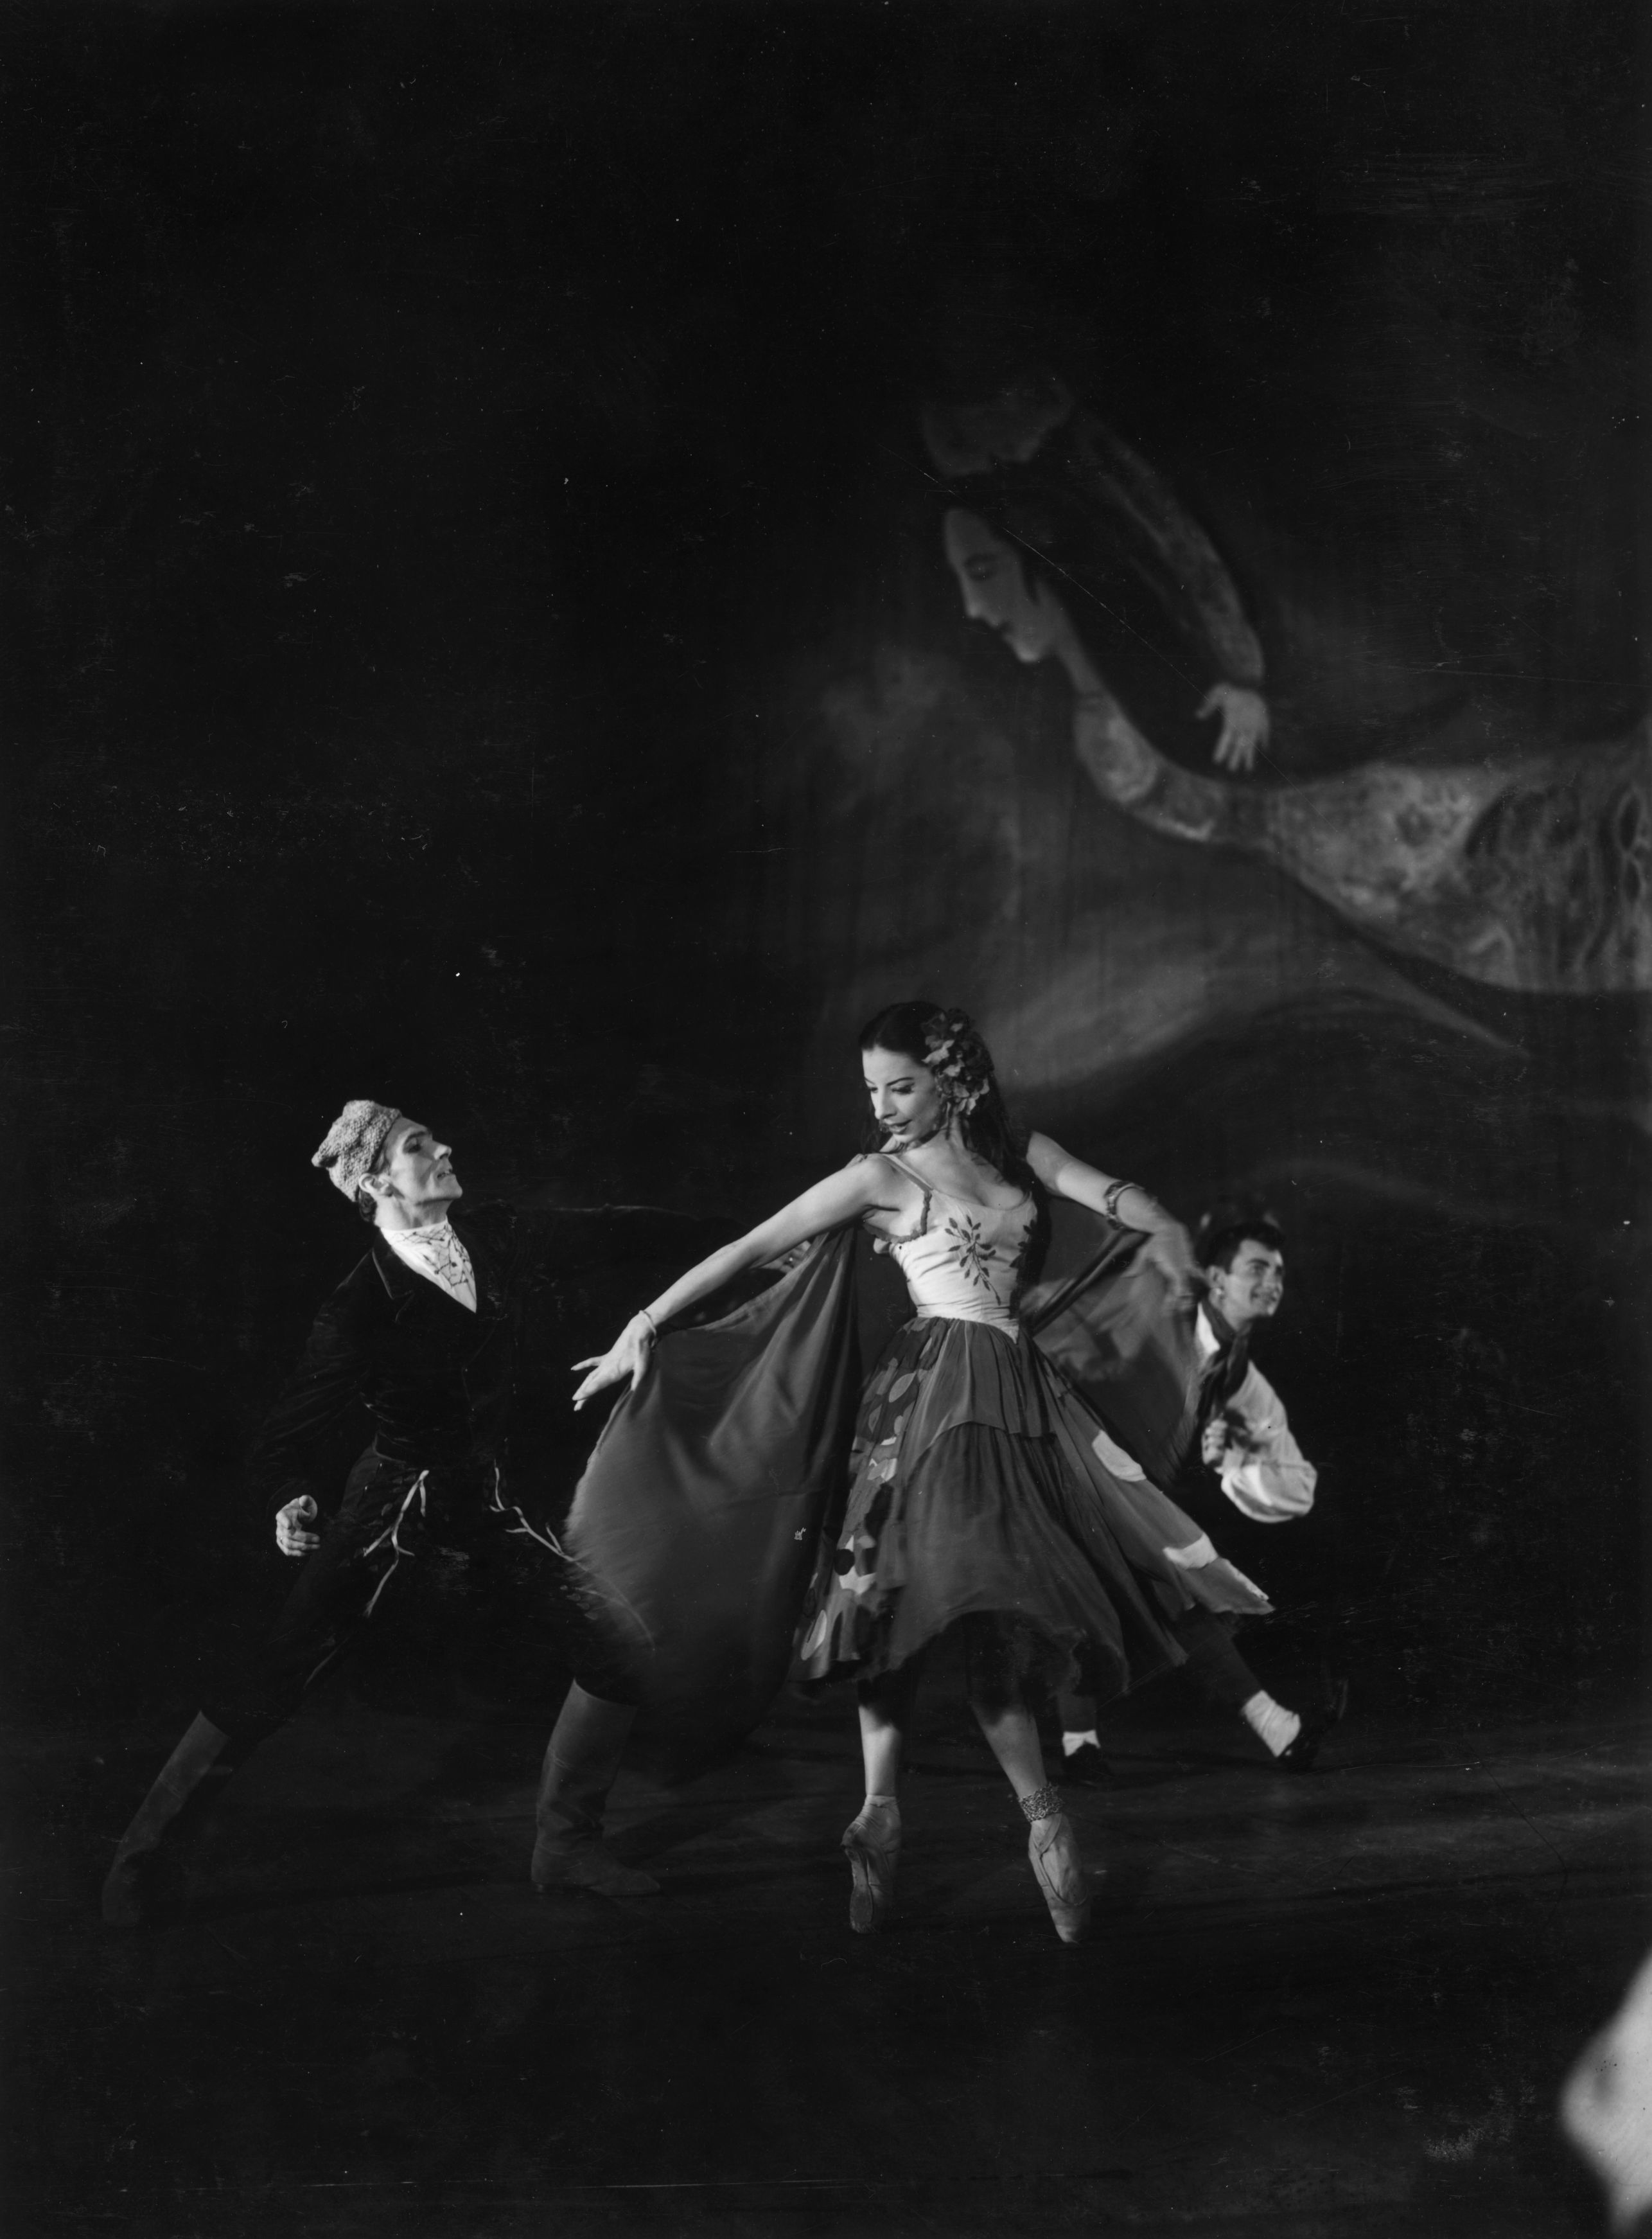 Choreographed by Leonid Massine, with decor by Marc Chagall to music by Tchaikovsky. (Photo by Baron/Getty Images)